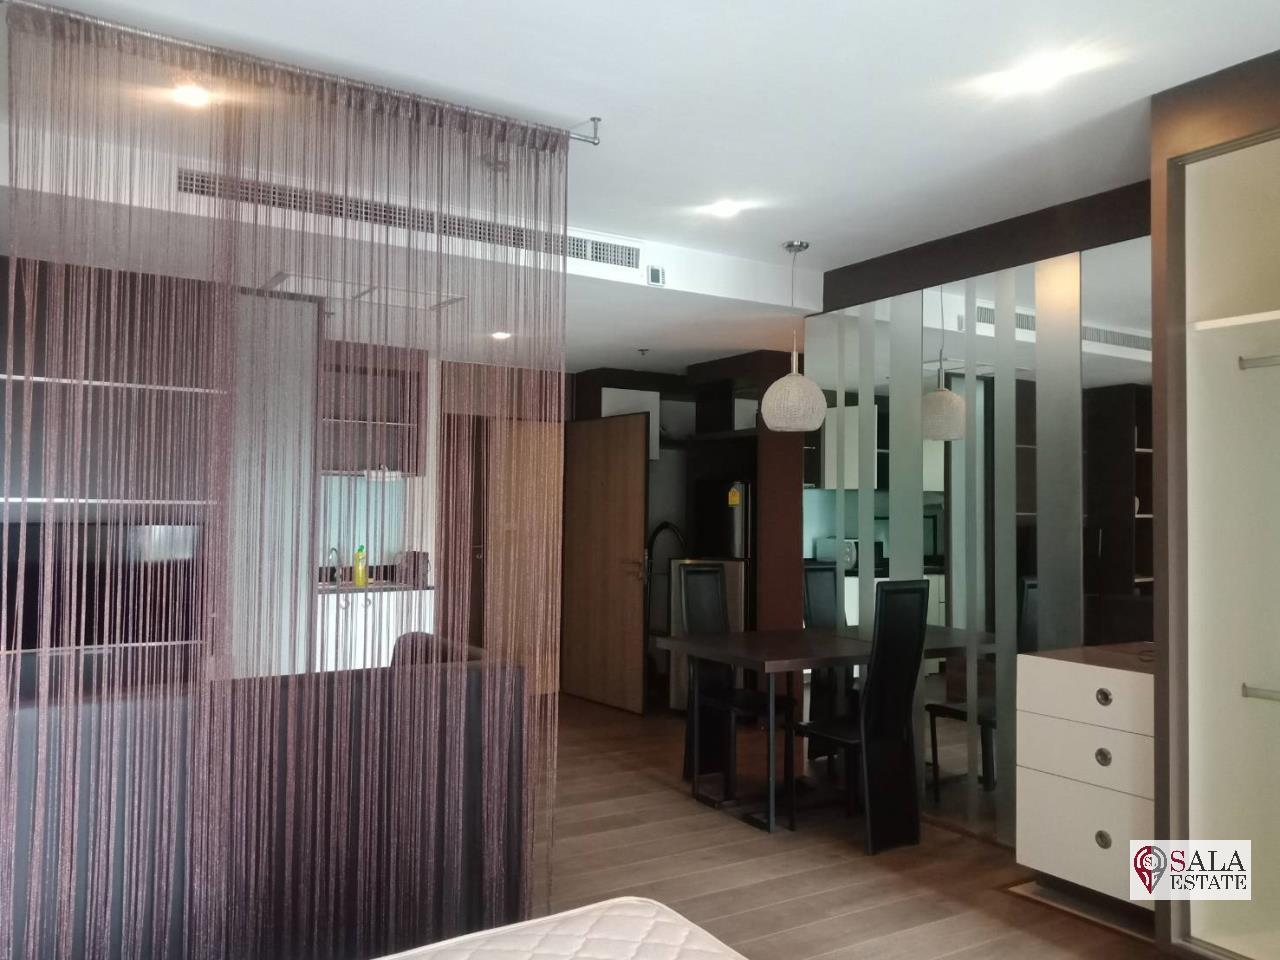 SALA ESTATE Agency's ( FOR RENT/SALE ) NOBLE REMIX - BTS THONG LOR, STUDIO, FULLY FURNISHED WITH BATHTUB 1